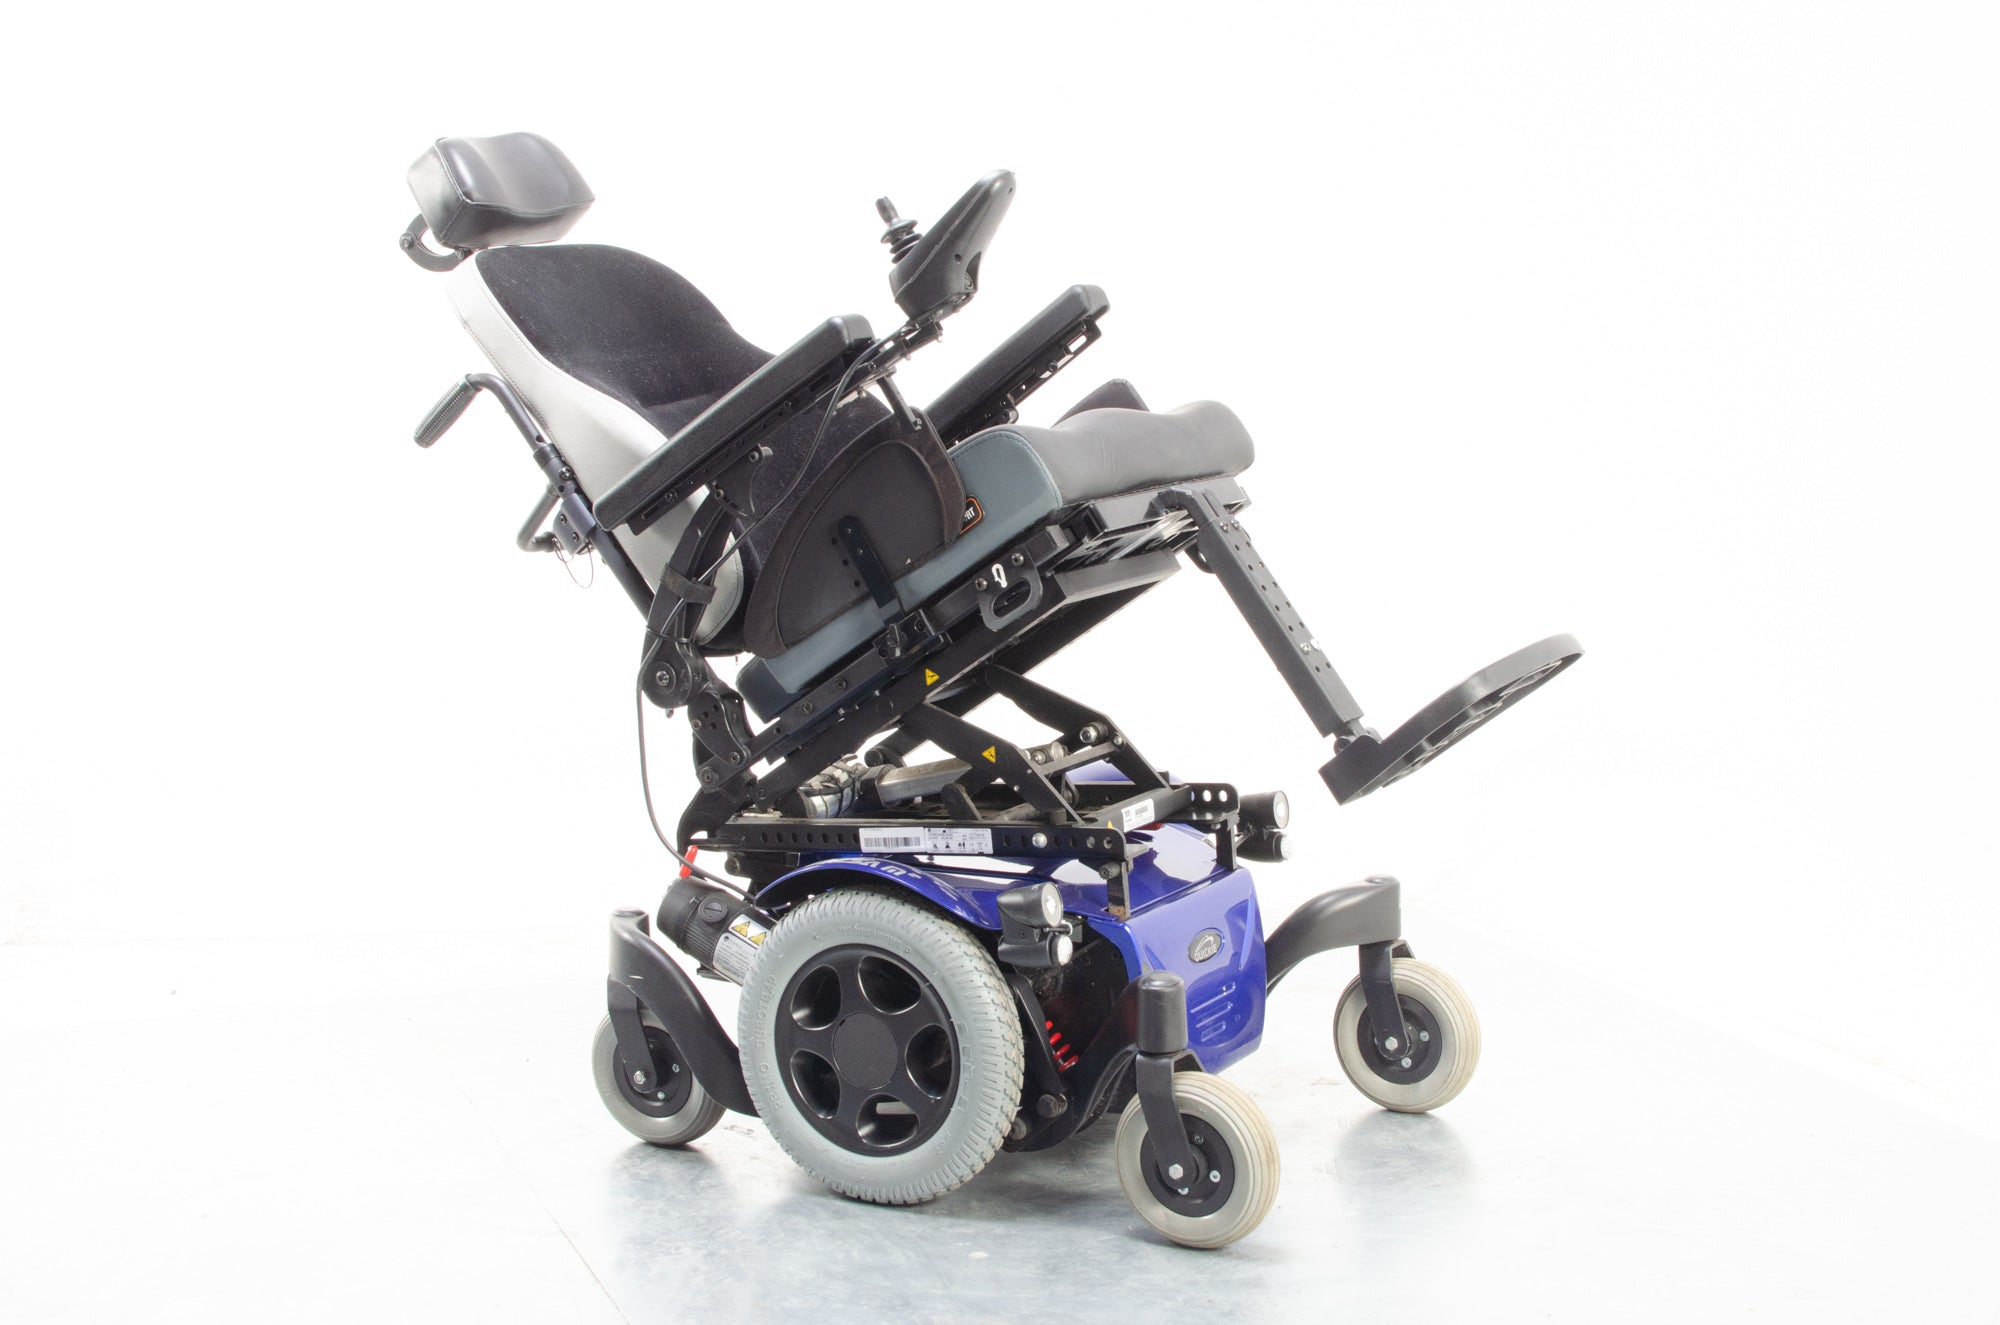 Quickie Salsa M2 6mph Used Electric Wheelchair Powerchair Power Tilt Sunrise Medical MWD Outdoor